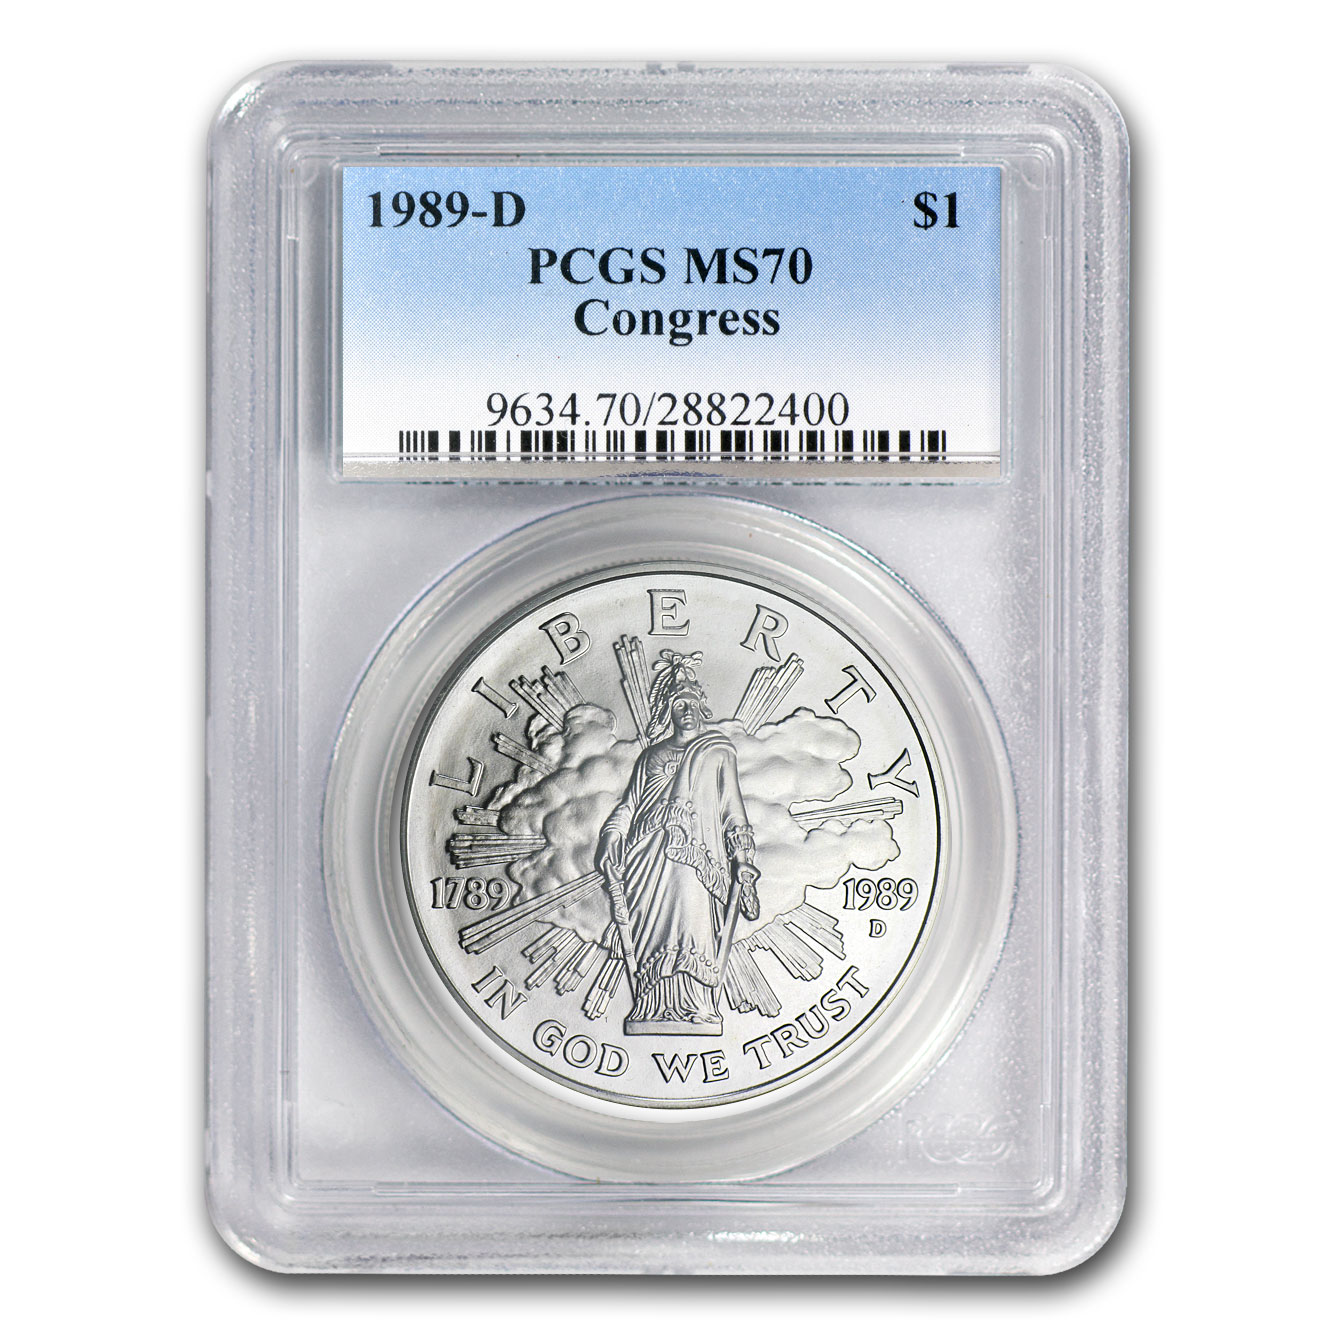 1989-D Congress Bicentennial $1 Silver Commemorative MS-70 PCGS